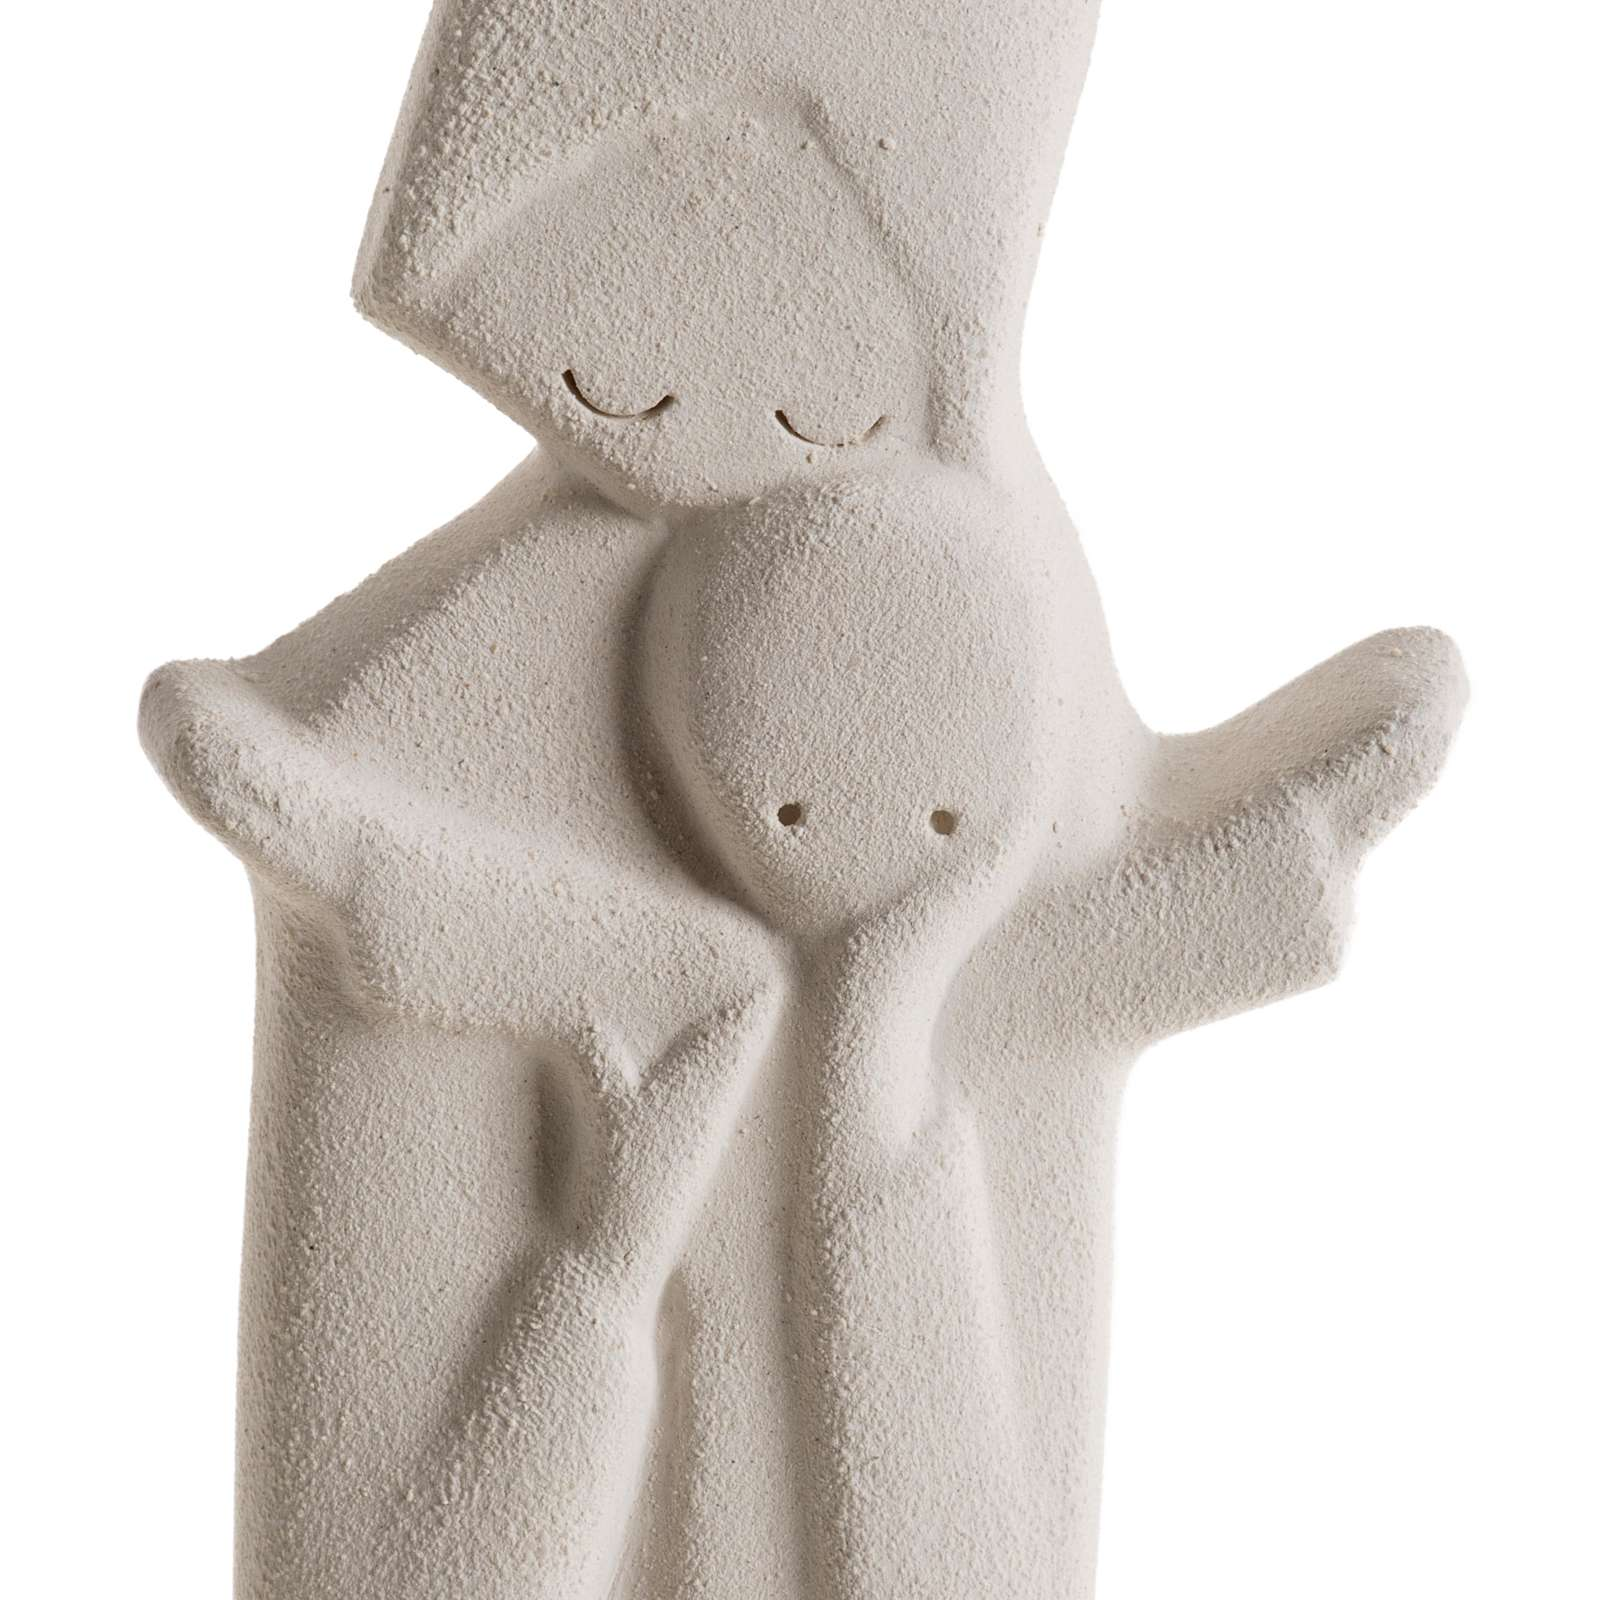 Our Lady Gen in ceramic, hanging 4